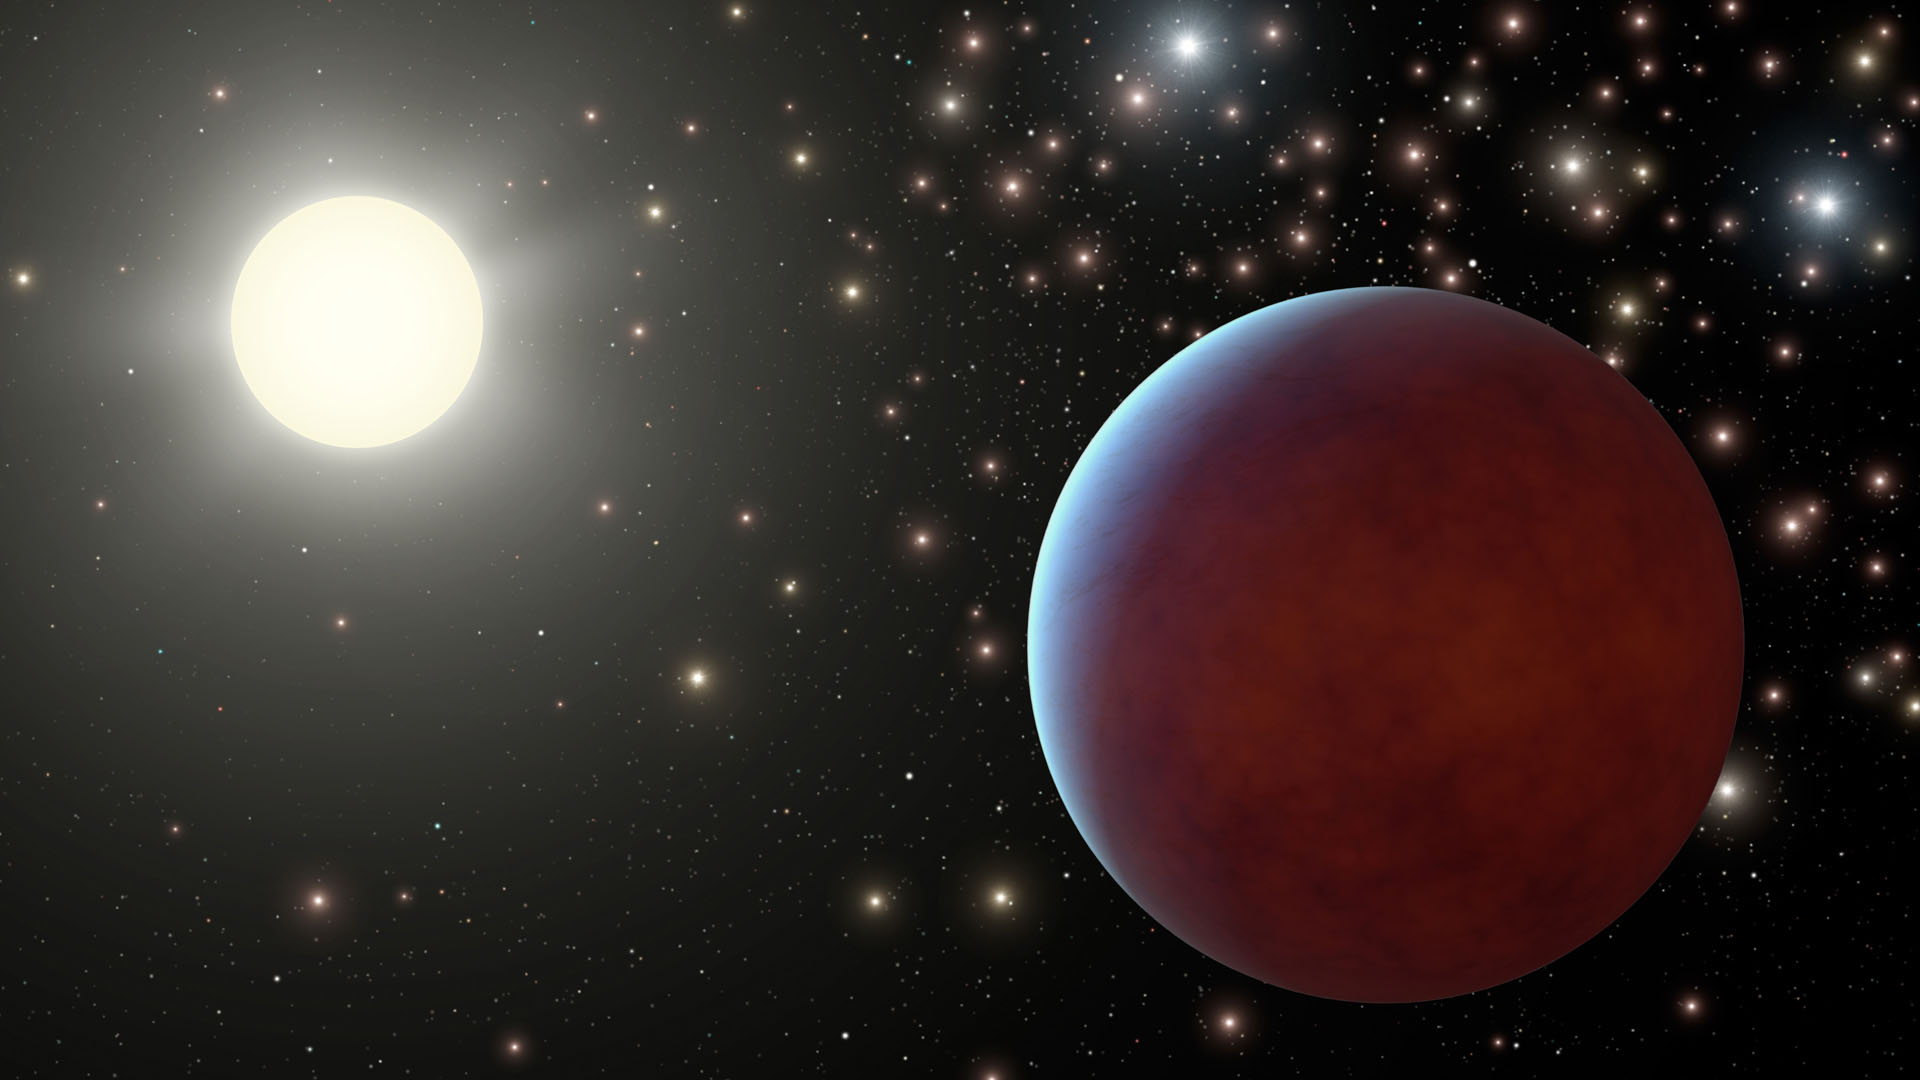 planets around a star - photo #19